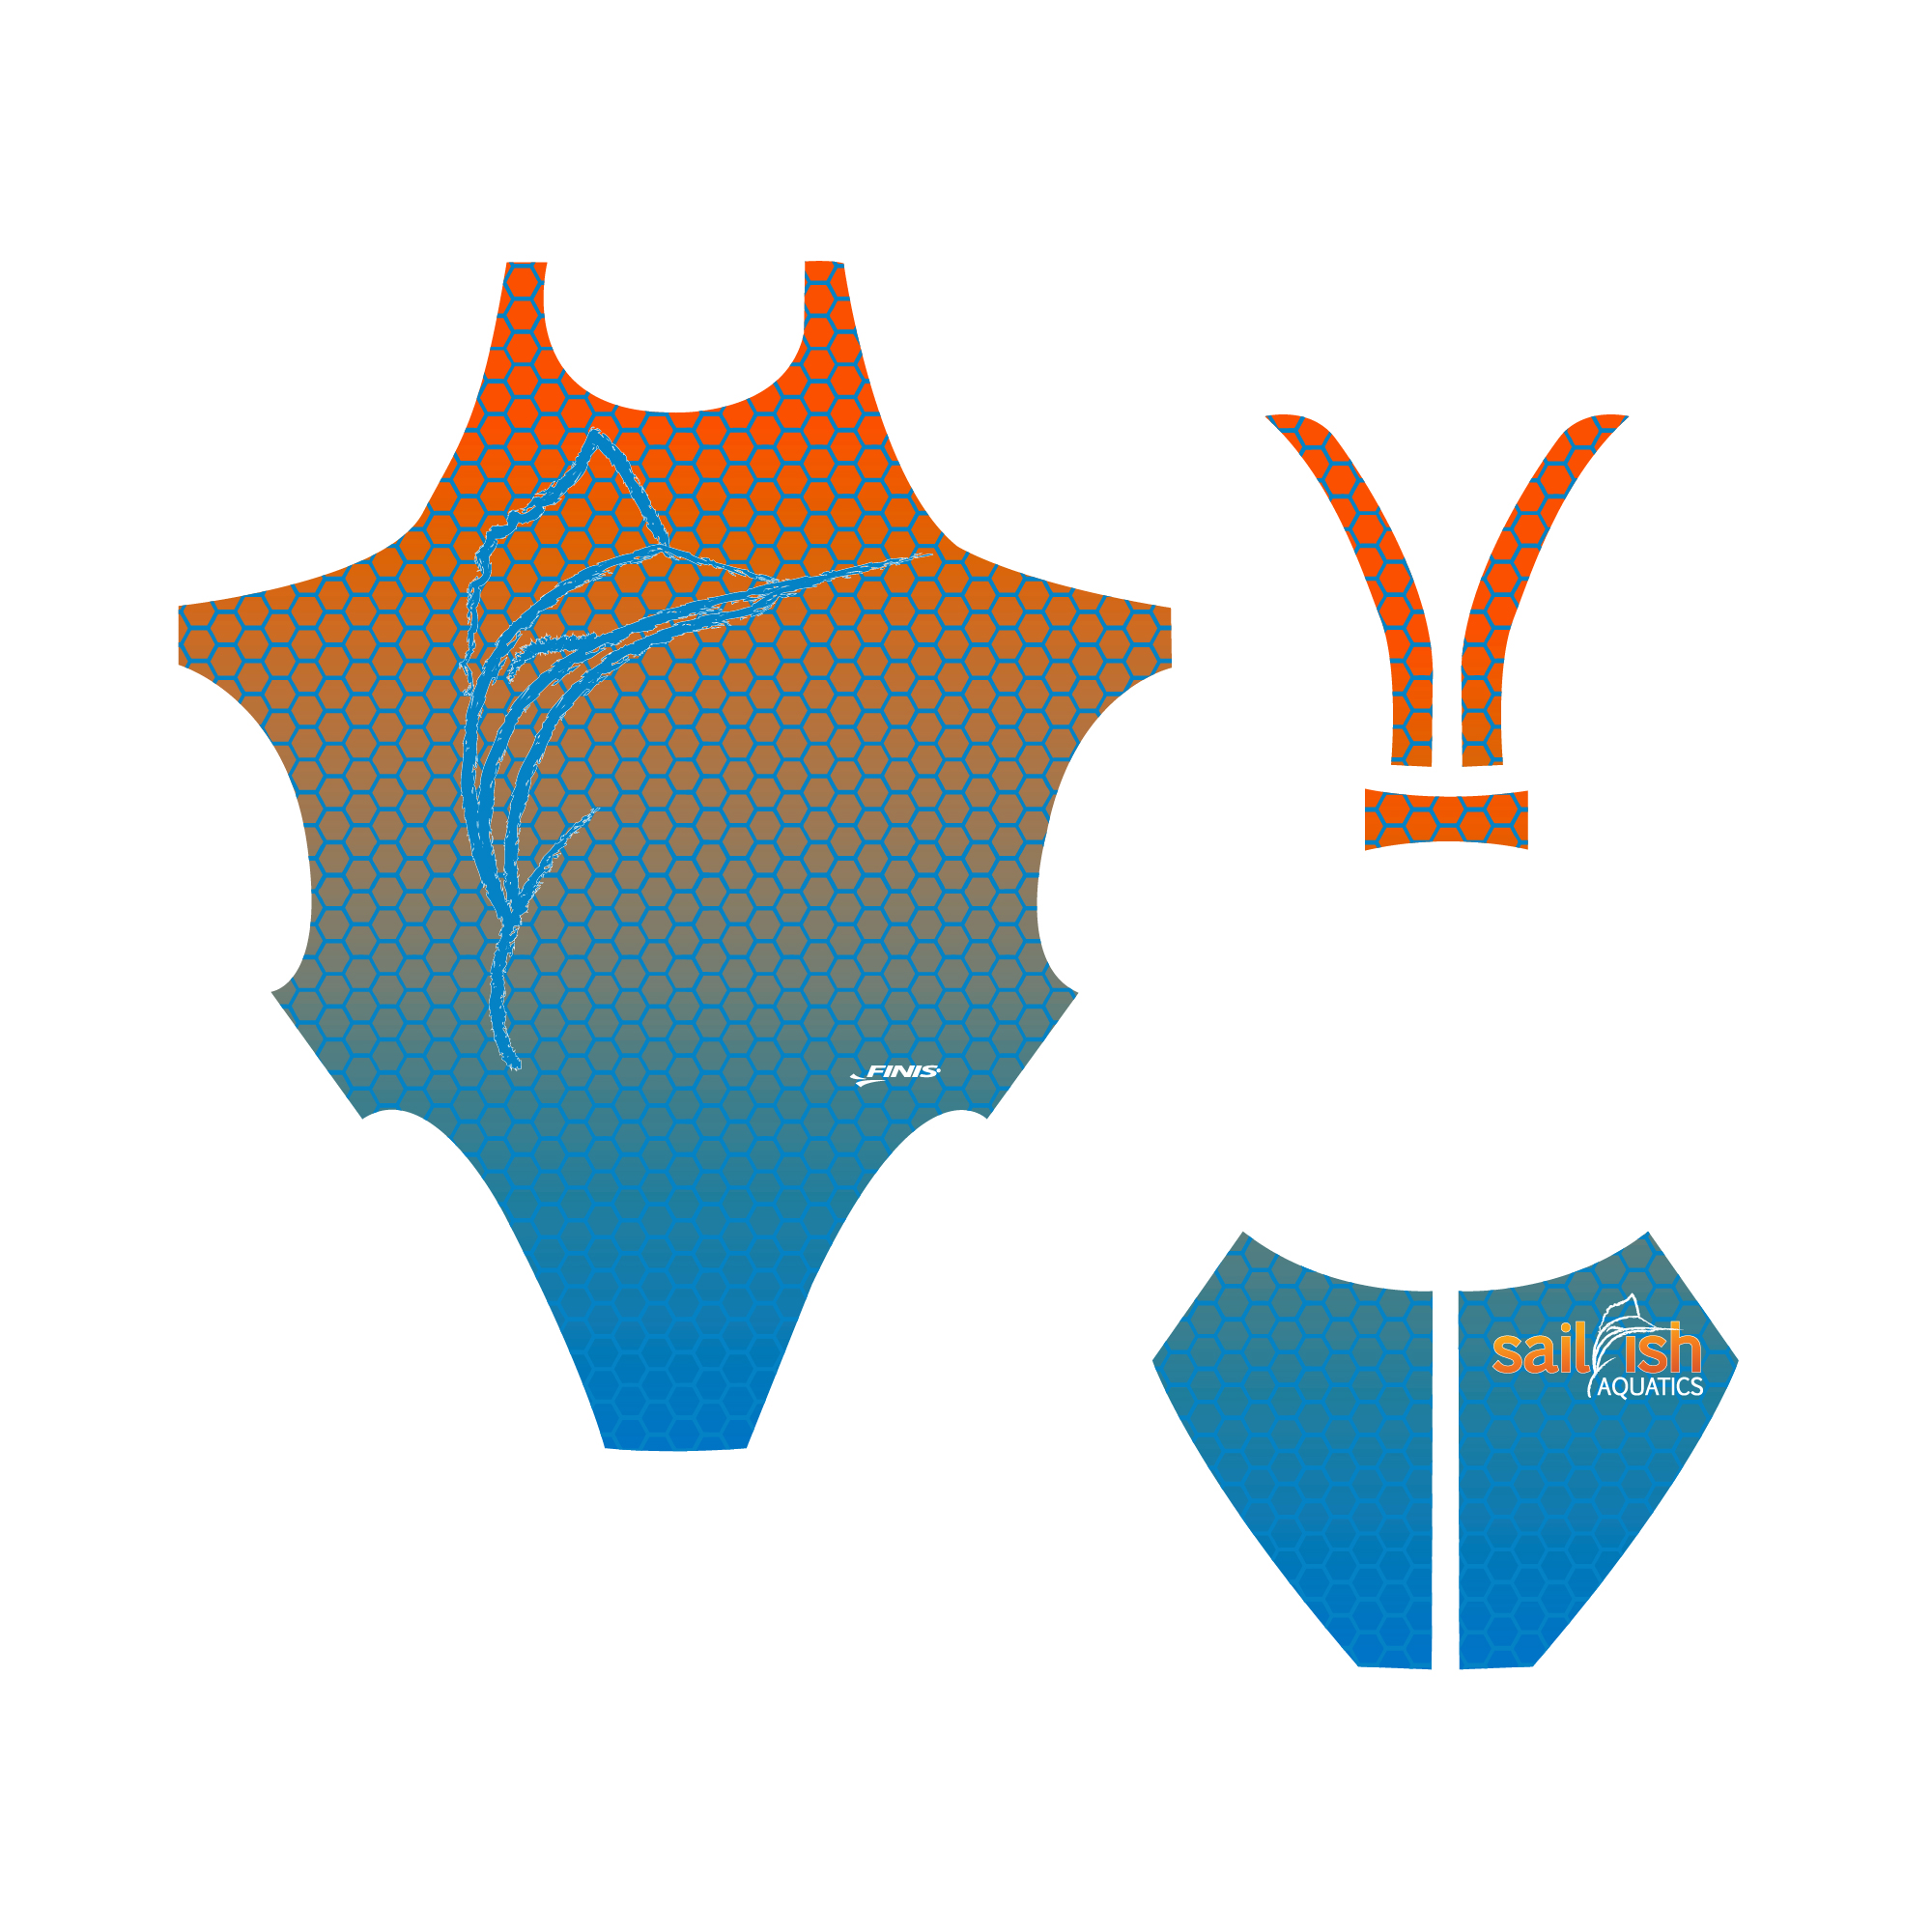 Sailfish aquatics custom blade back finis swim suit proof